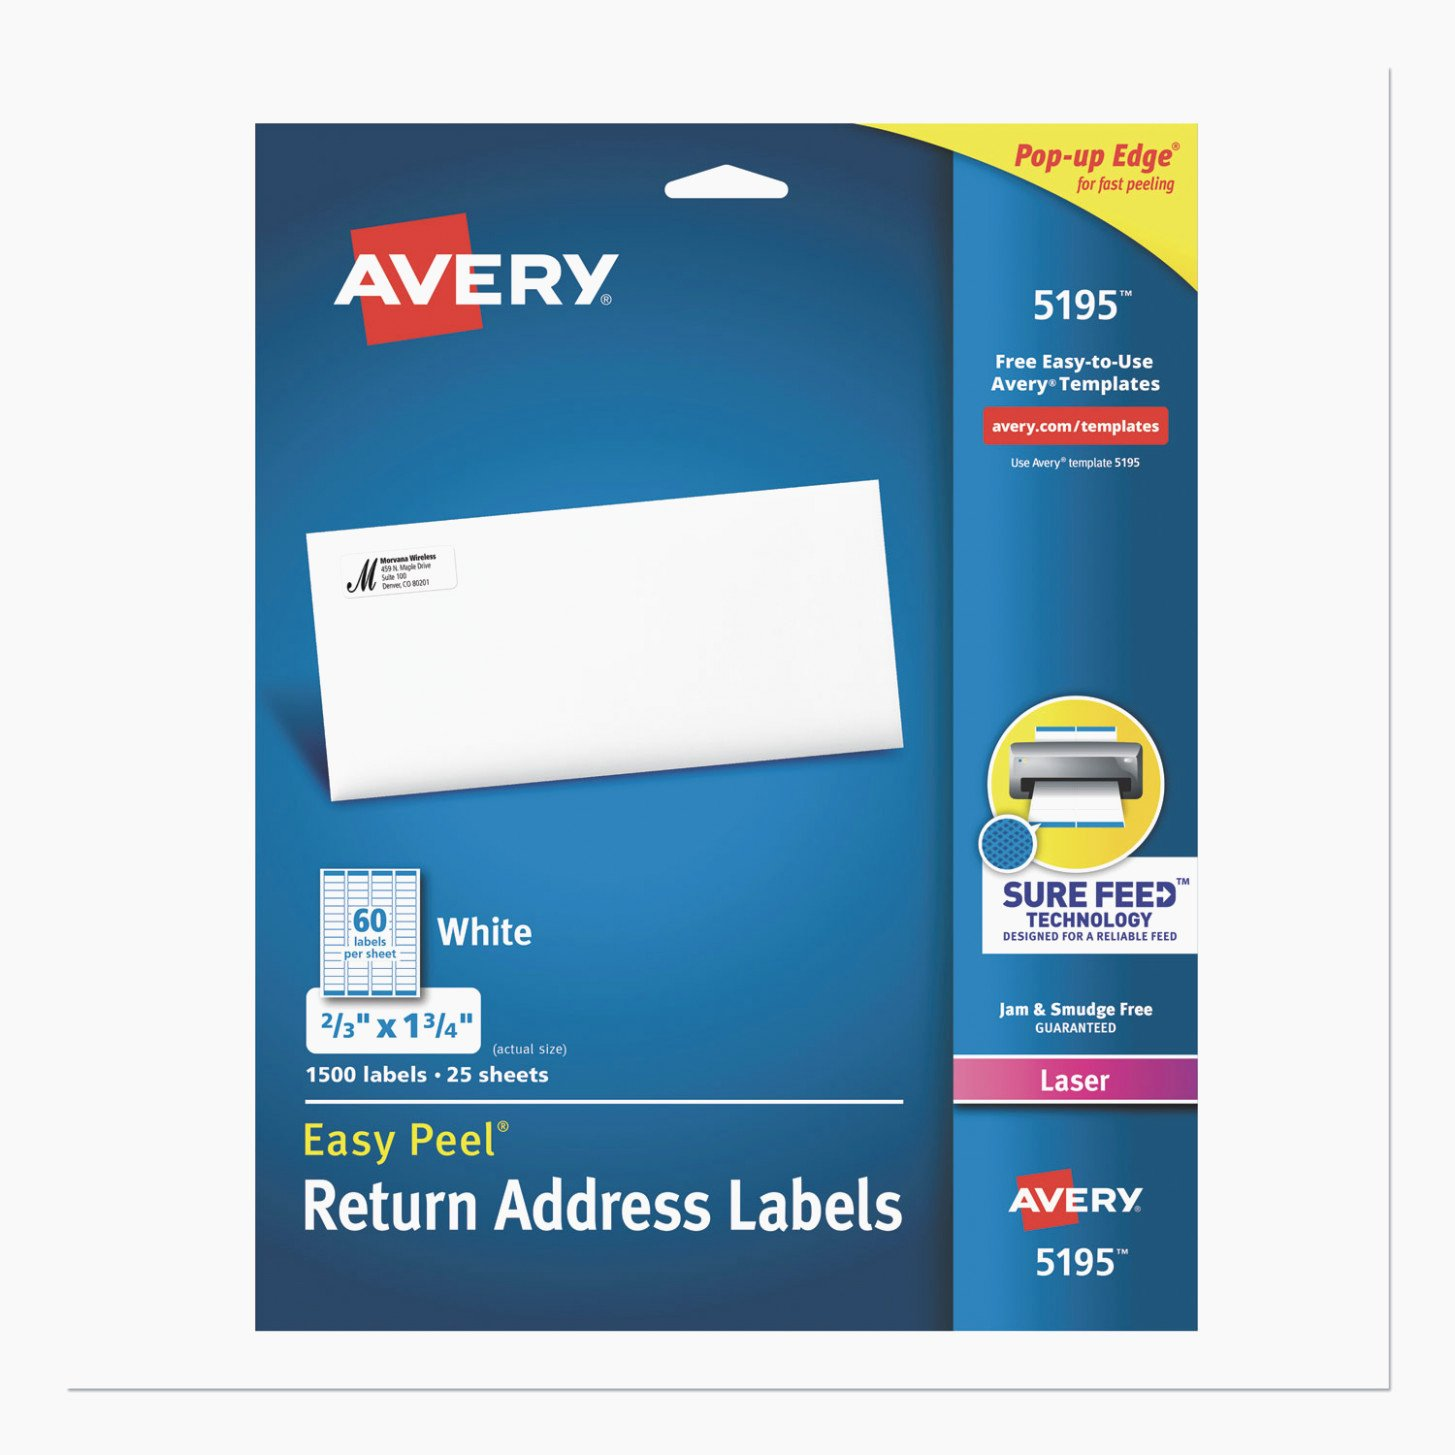 Charity Return Address Labels Fresh 11 Things to Avoid In Return Address